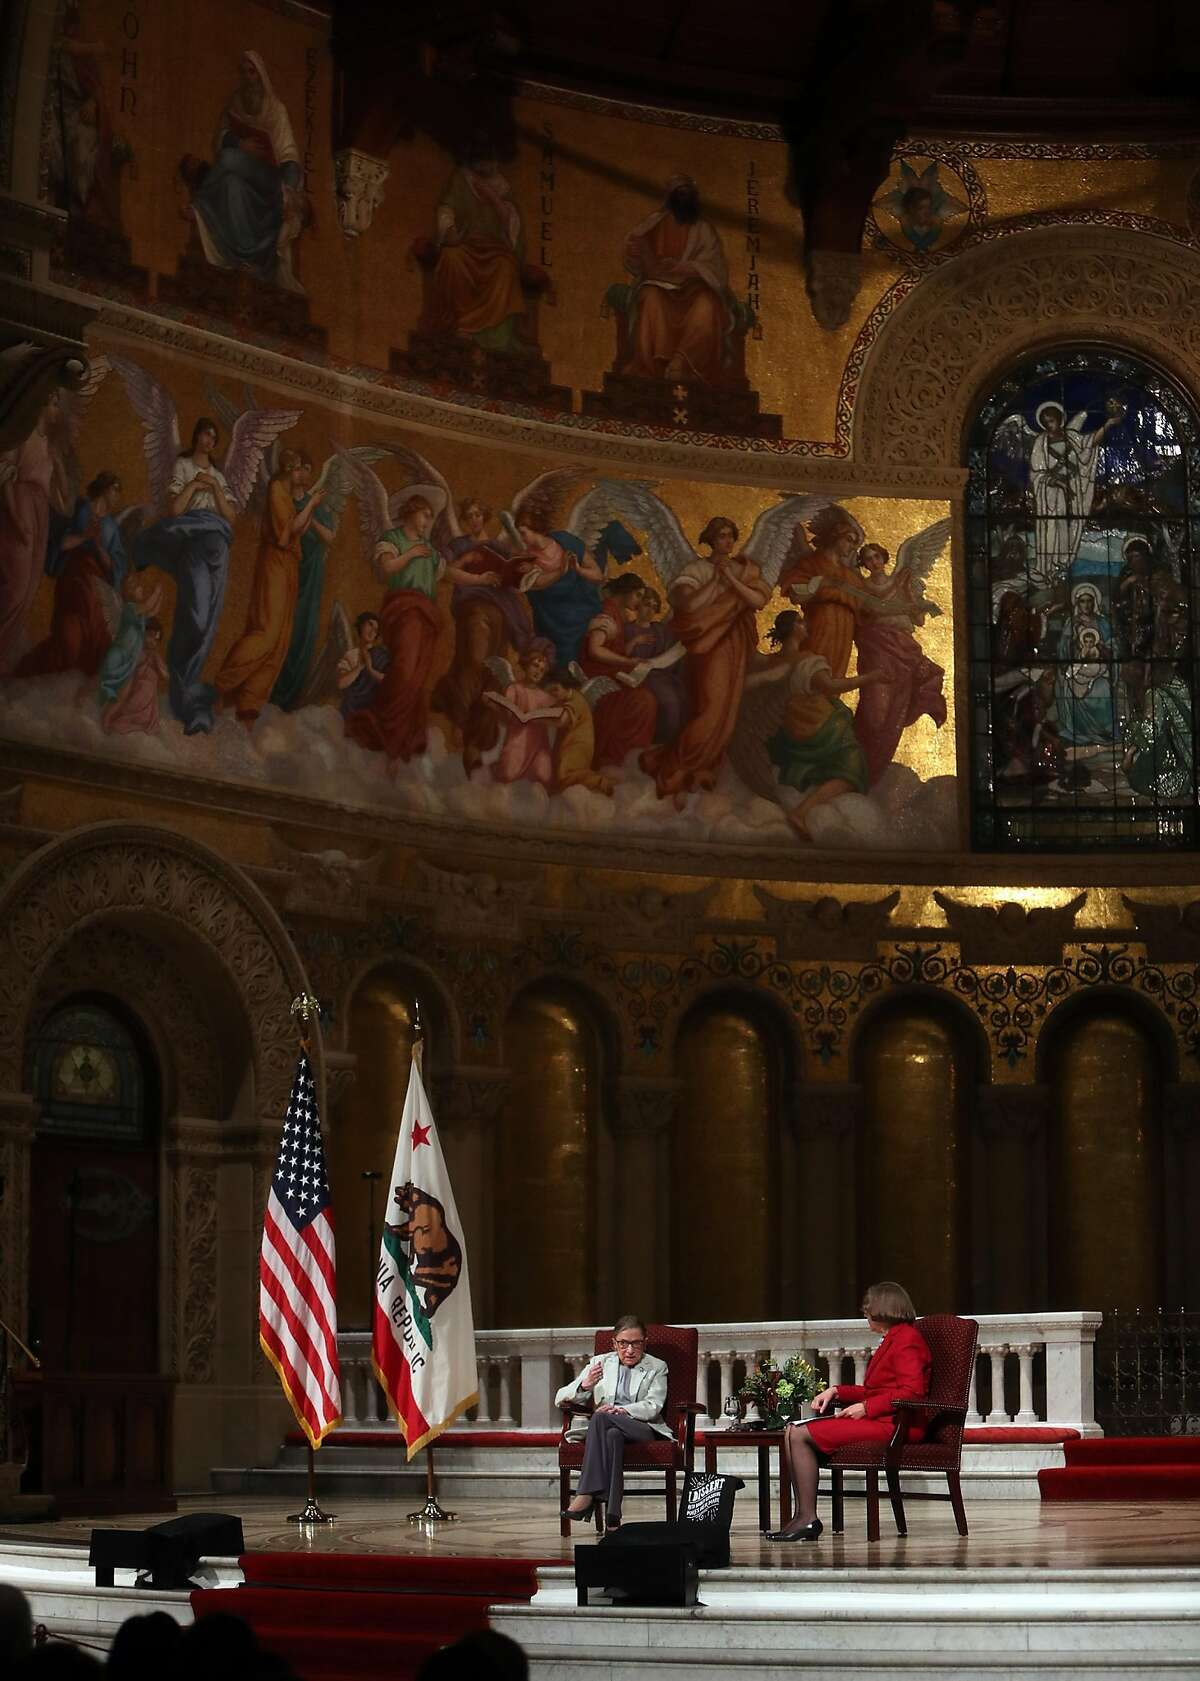 US Supreme Court Justice Ruth Bader Ginsburg is interviewed by Dean Jane Shaw at Stanford Memorial Church in Stanford, Calif., on Monday, February 6, 2017.